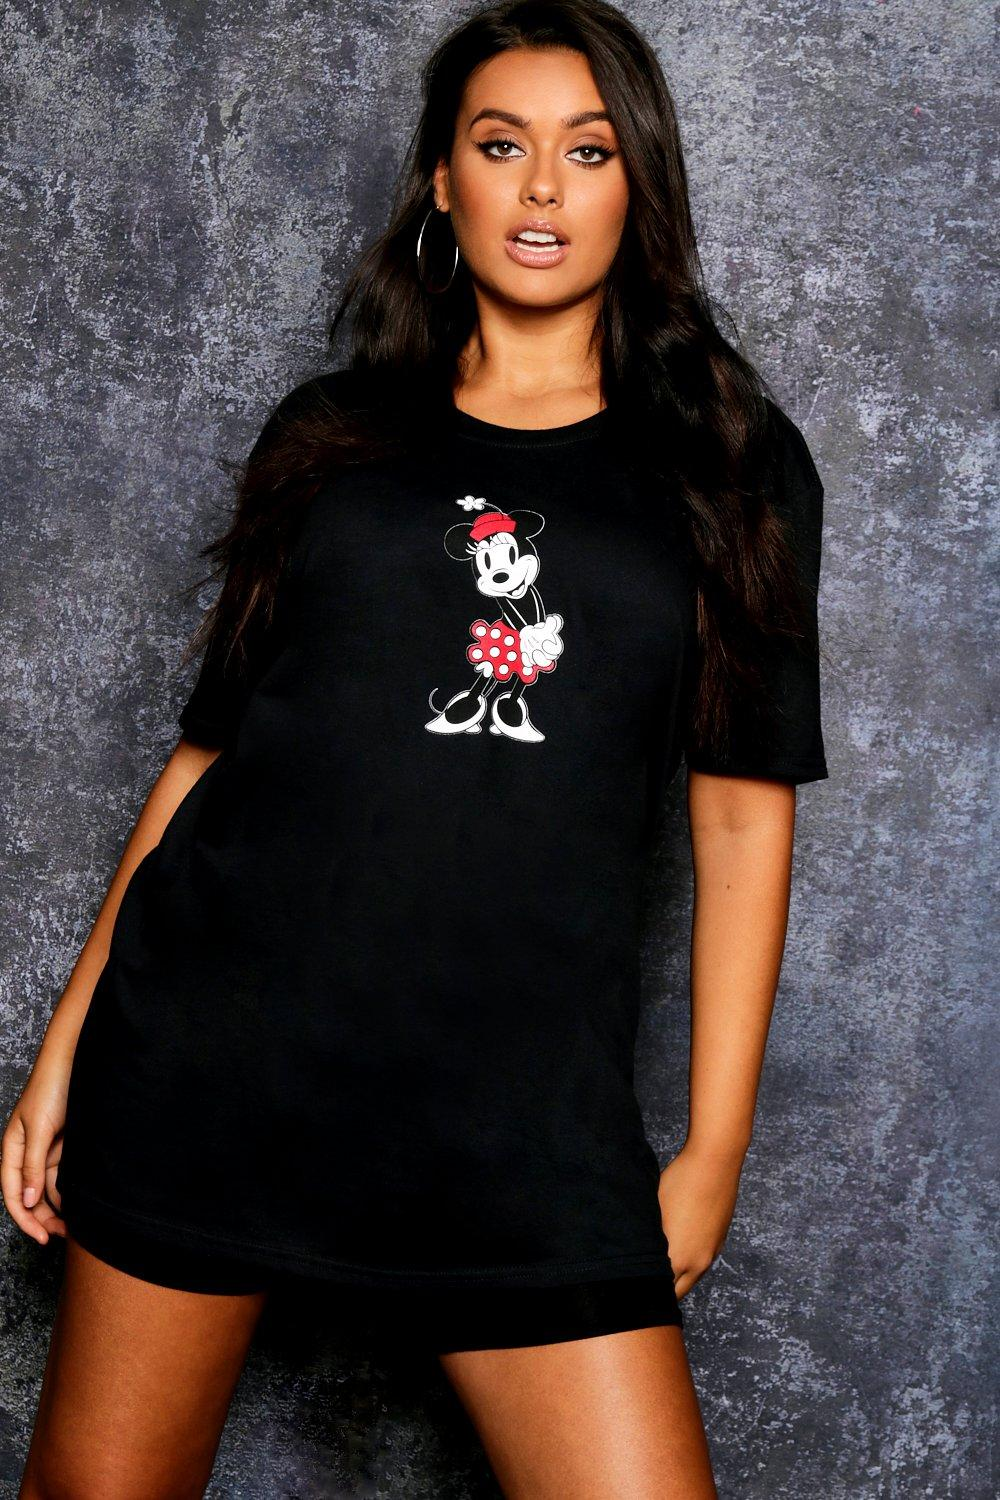 Shirt Graphic black Minnie T Disney Oversized wIq5wC